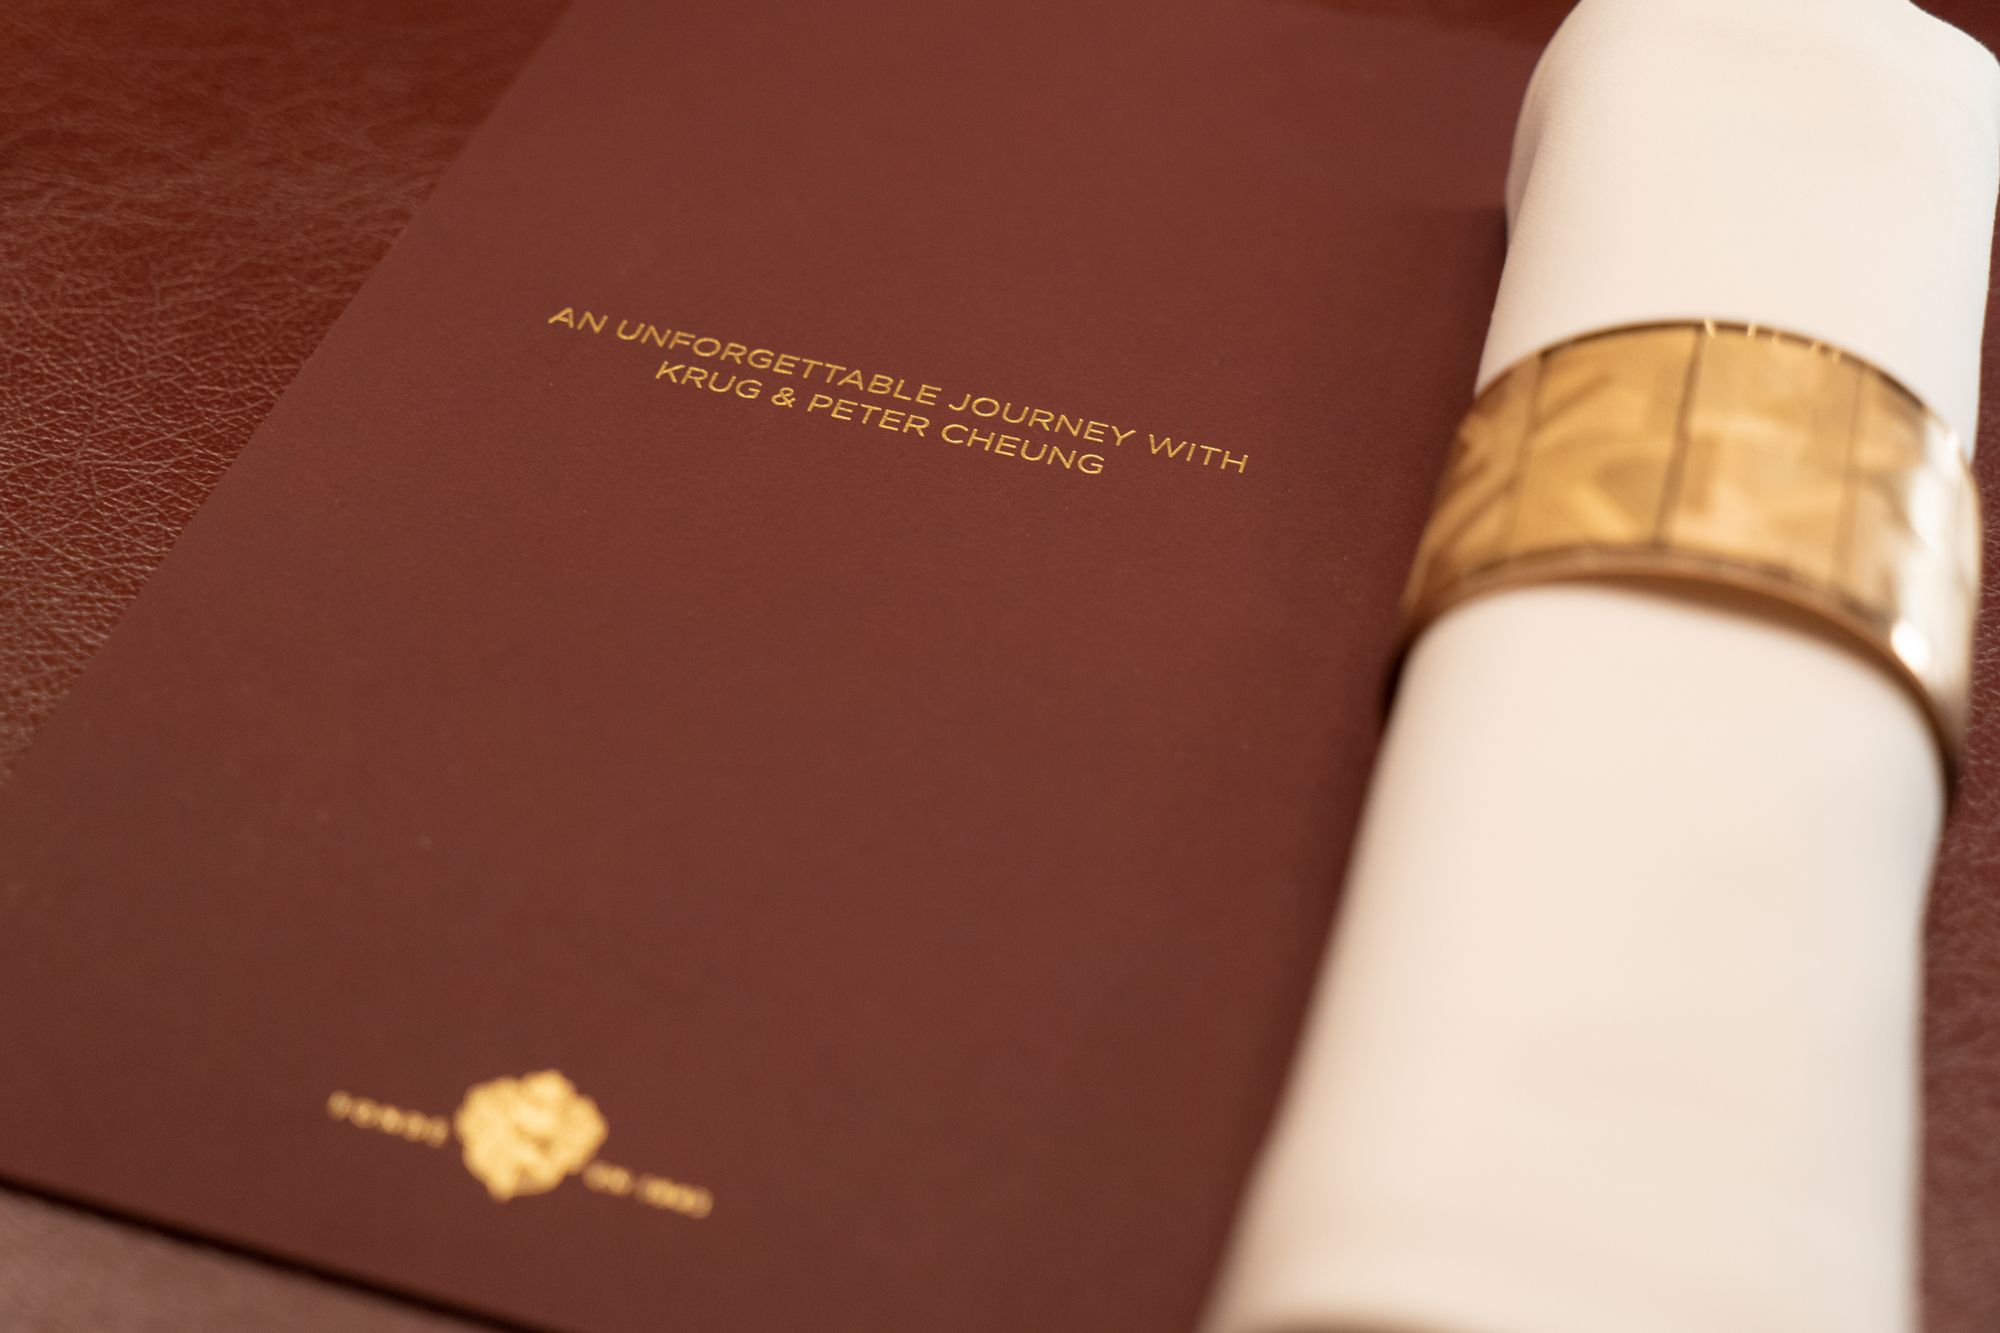 Decoding The Menu At The Krug Room Dinner With Peter Cheung